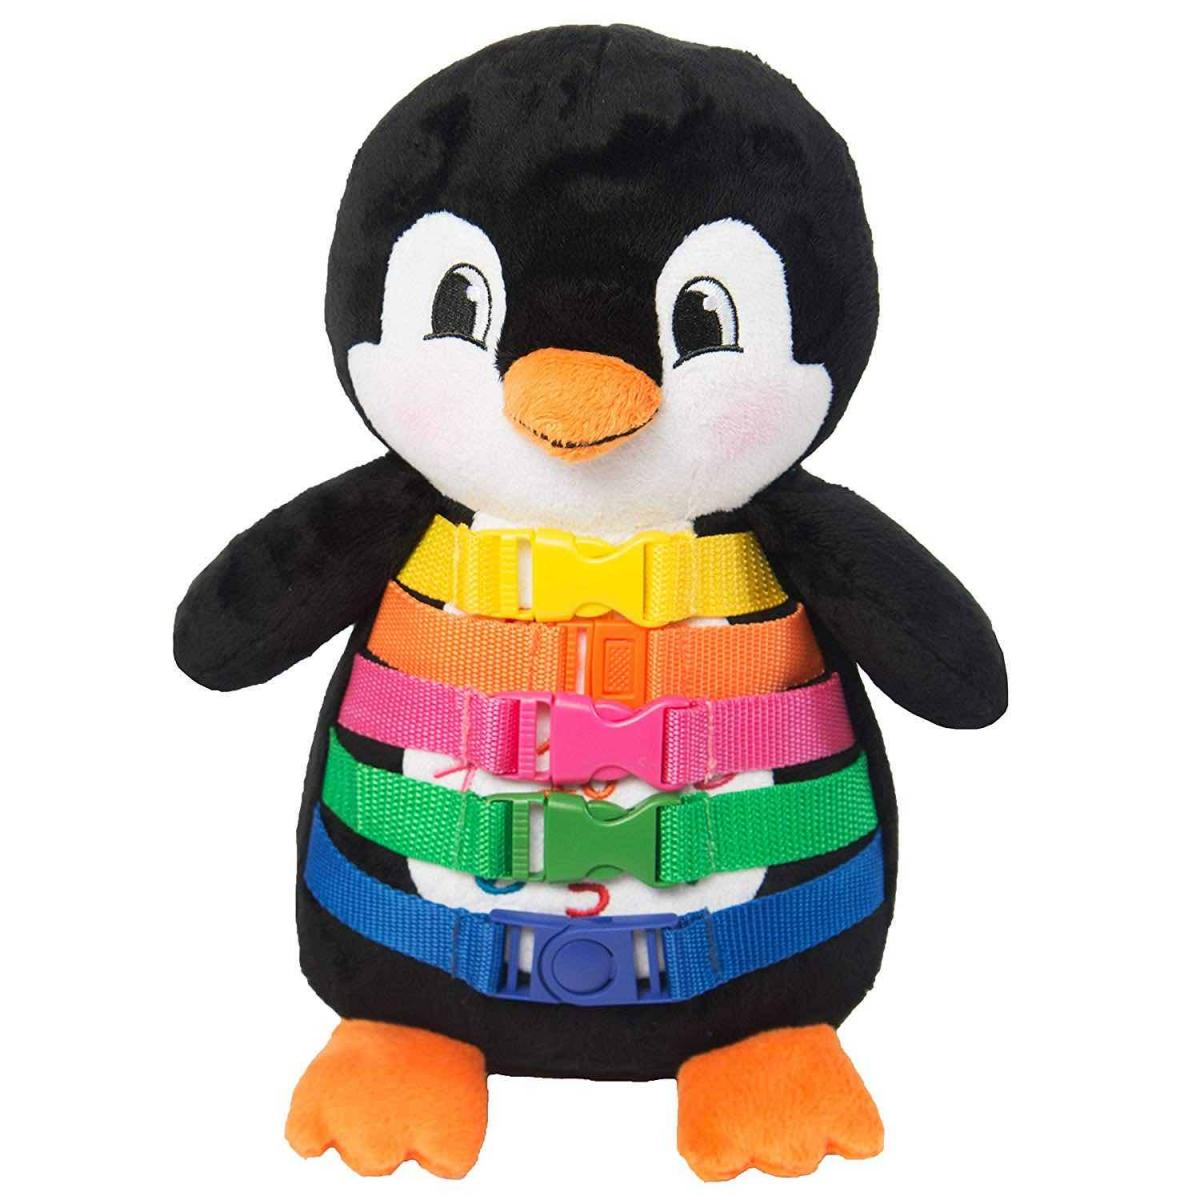 Blizzard Penguin – The Buckle Toy